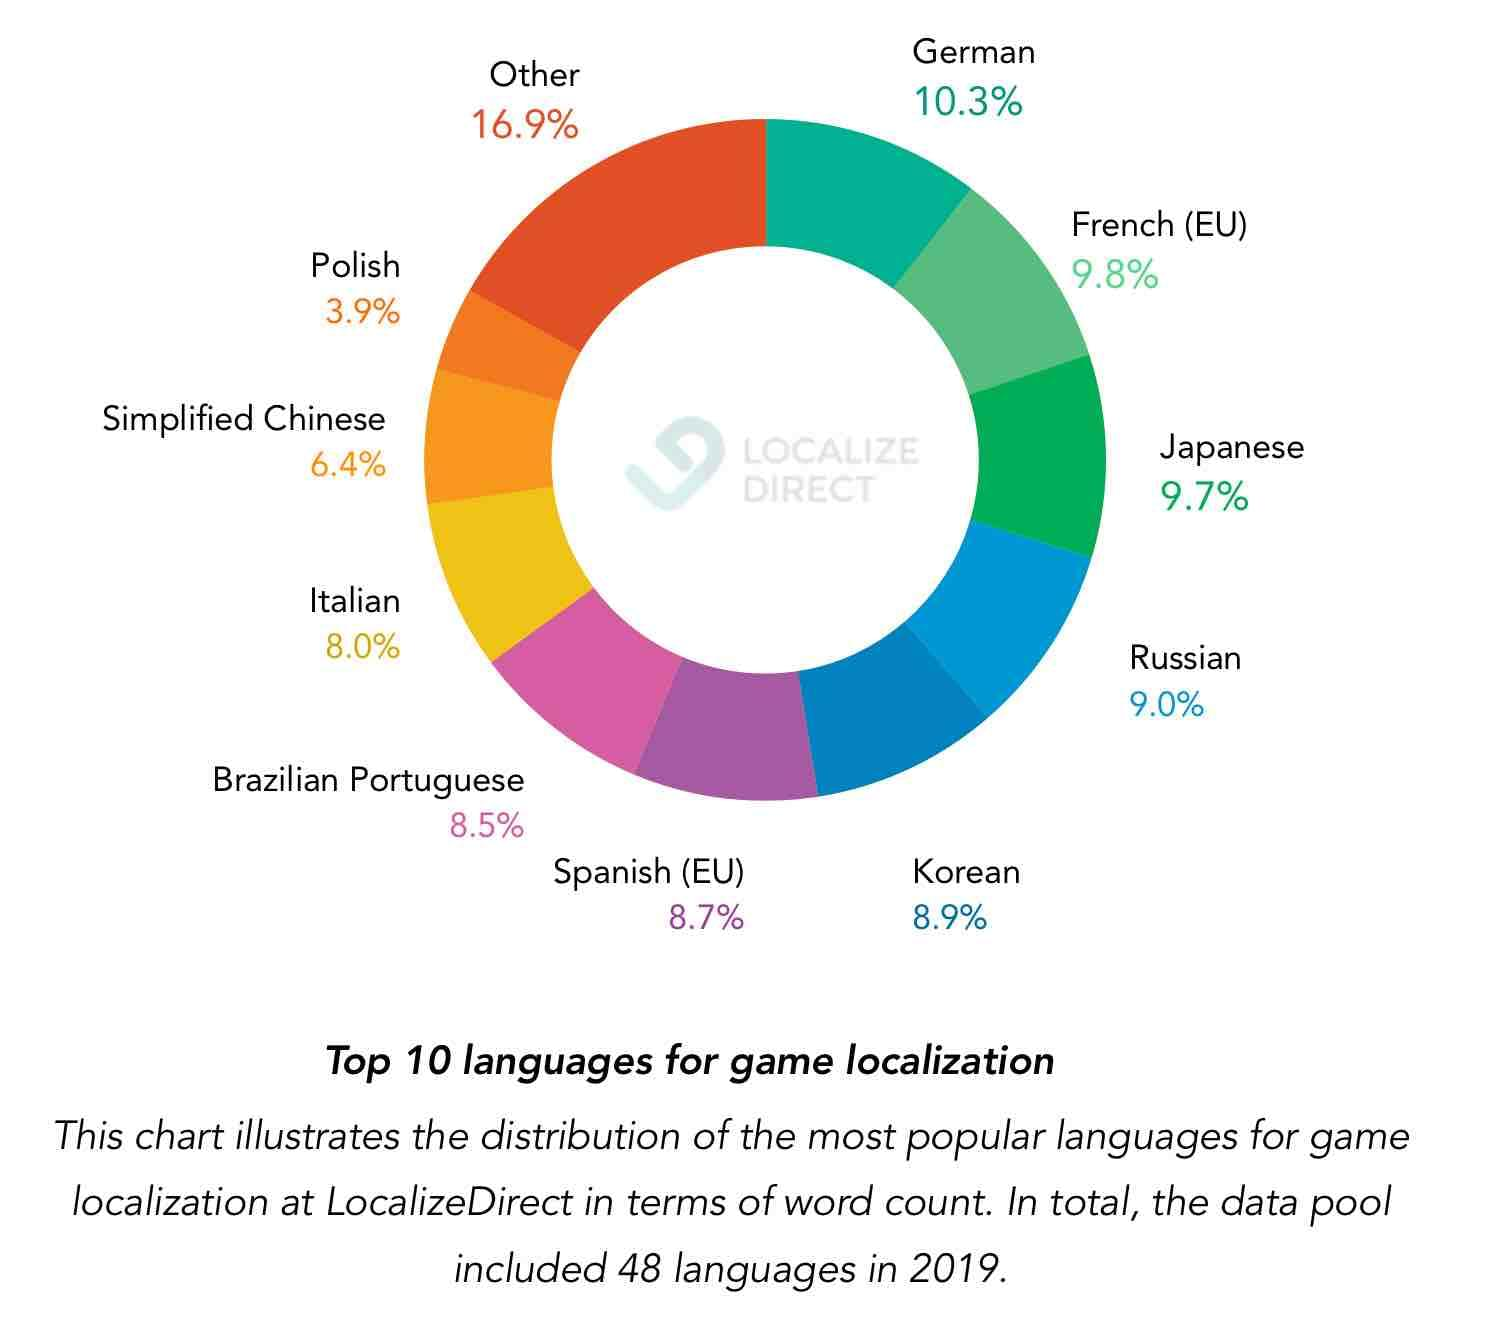 Most common languages in game loc in 2019